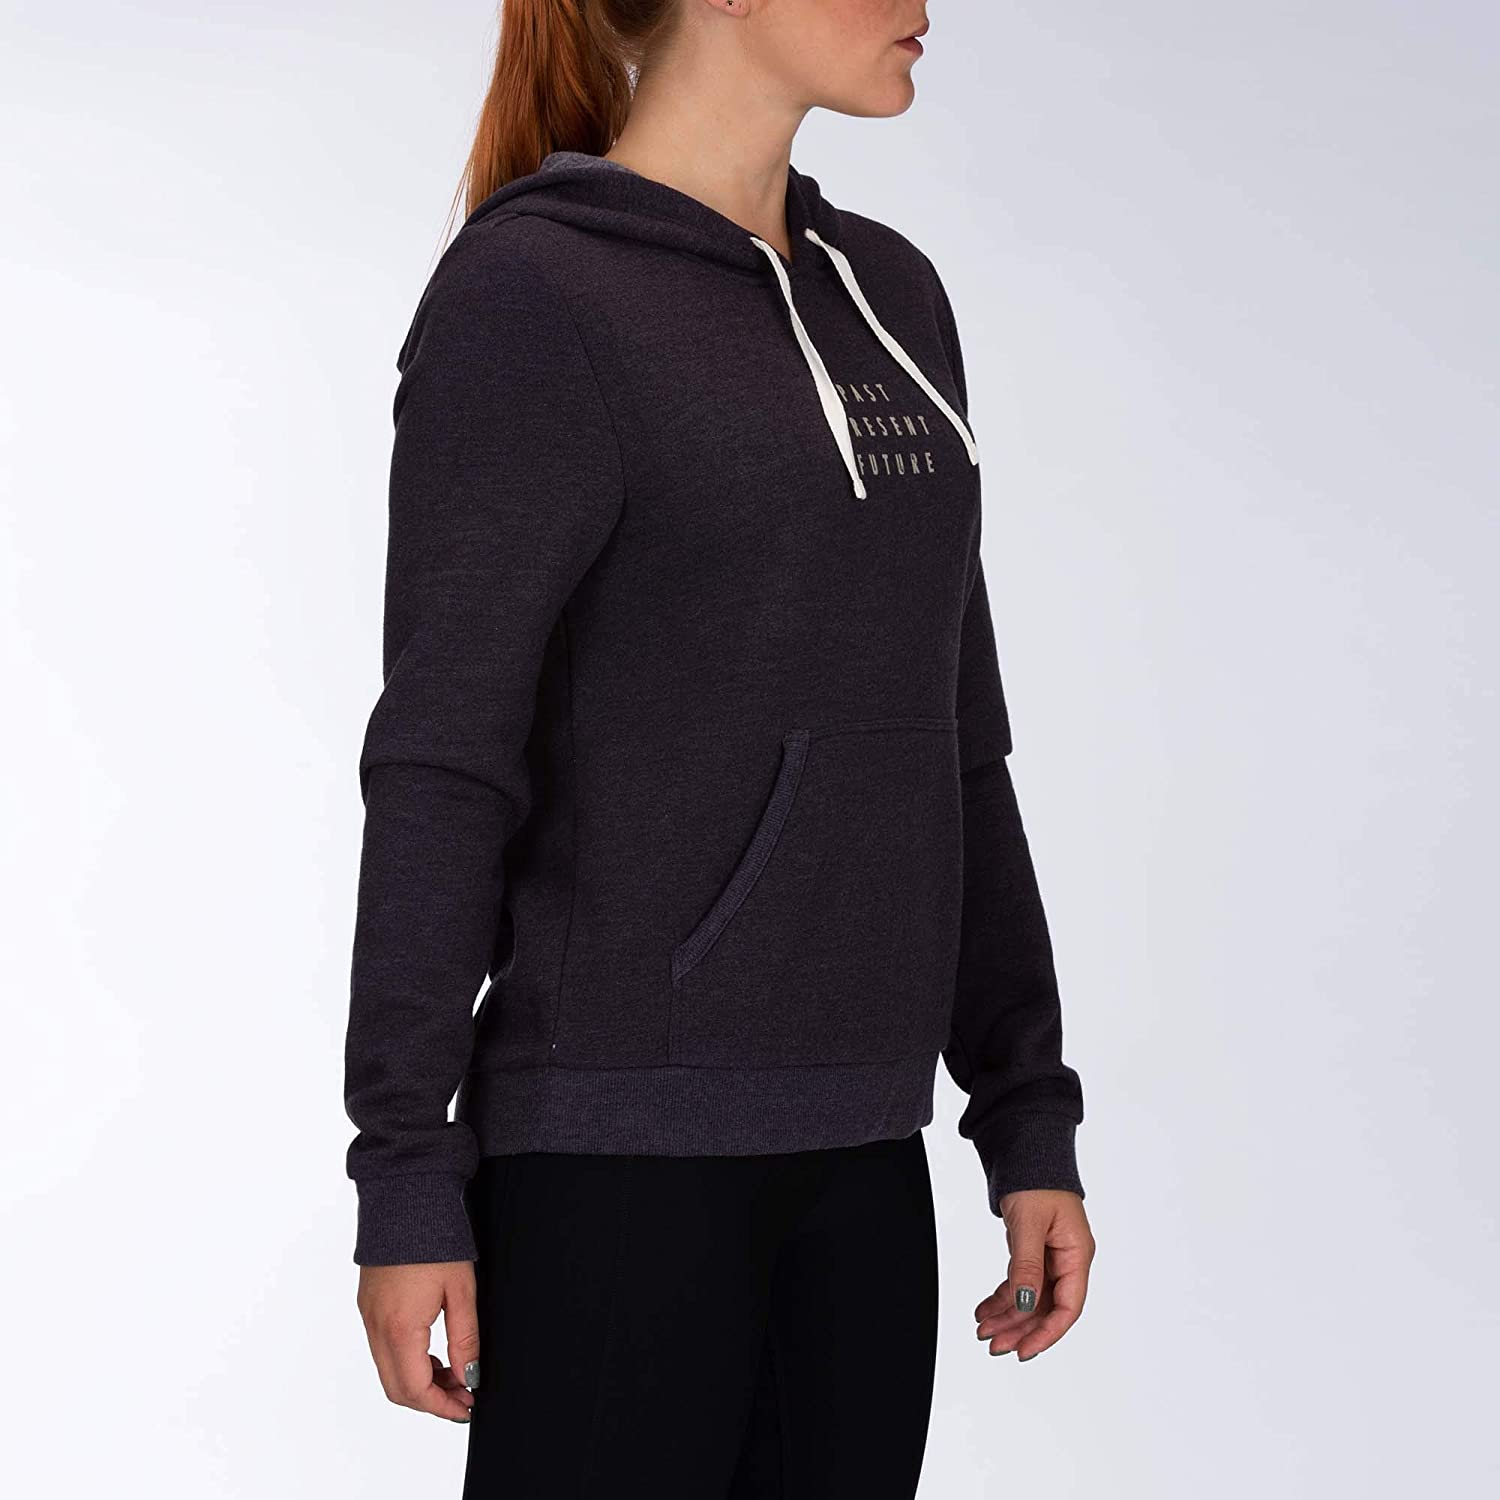 Hurley Damen Hidden Futures Perfect Women's Fleece Hoodie Sweatshirt Ölgrau